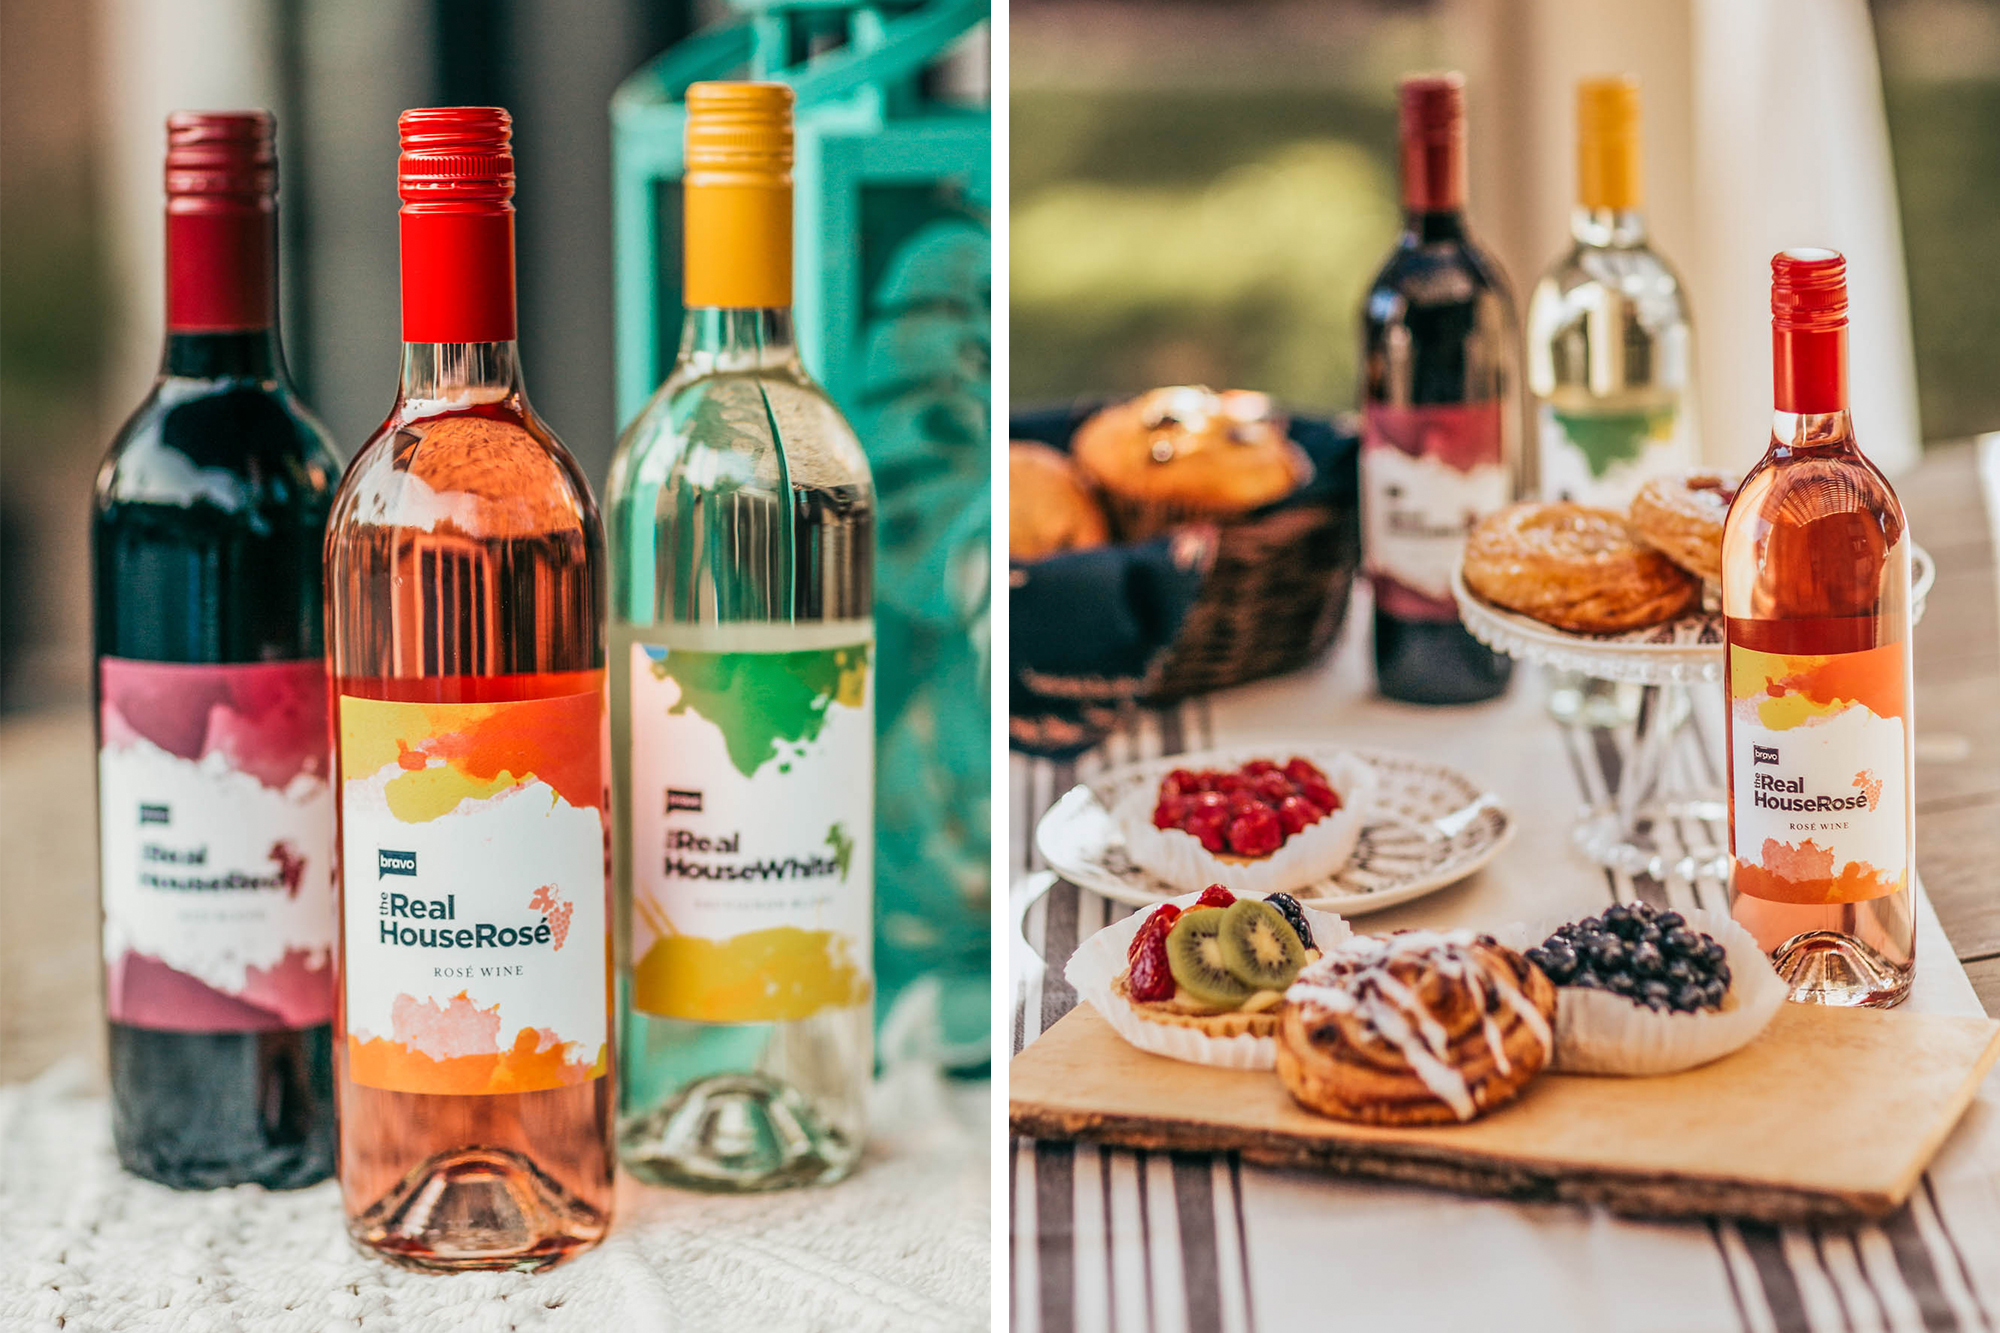 Real Housewives Wines